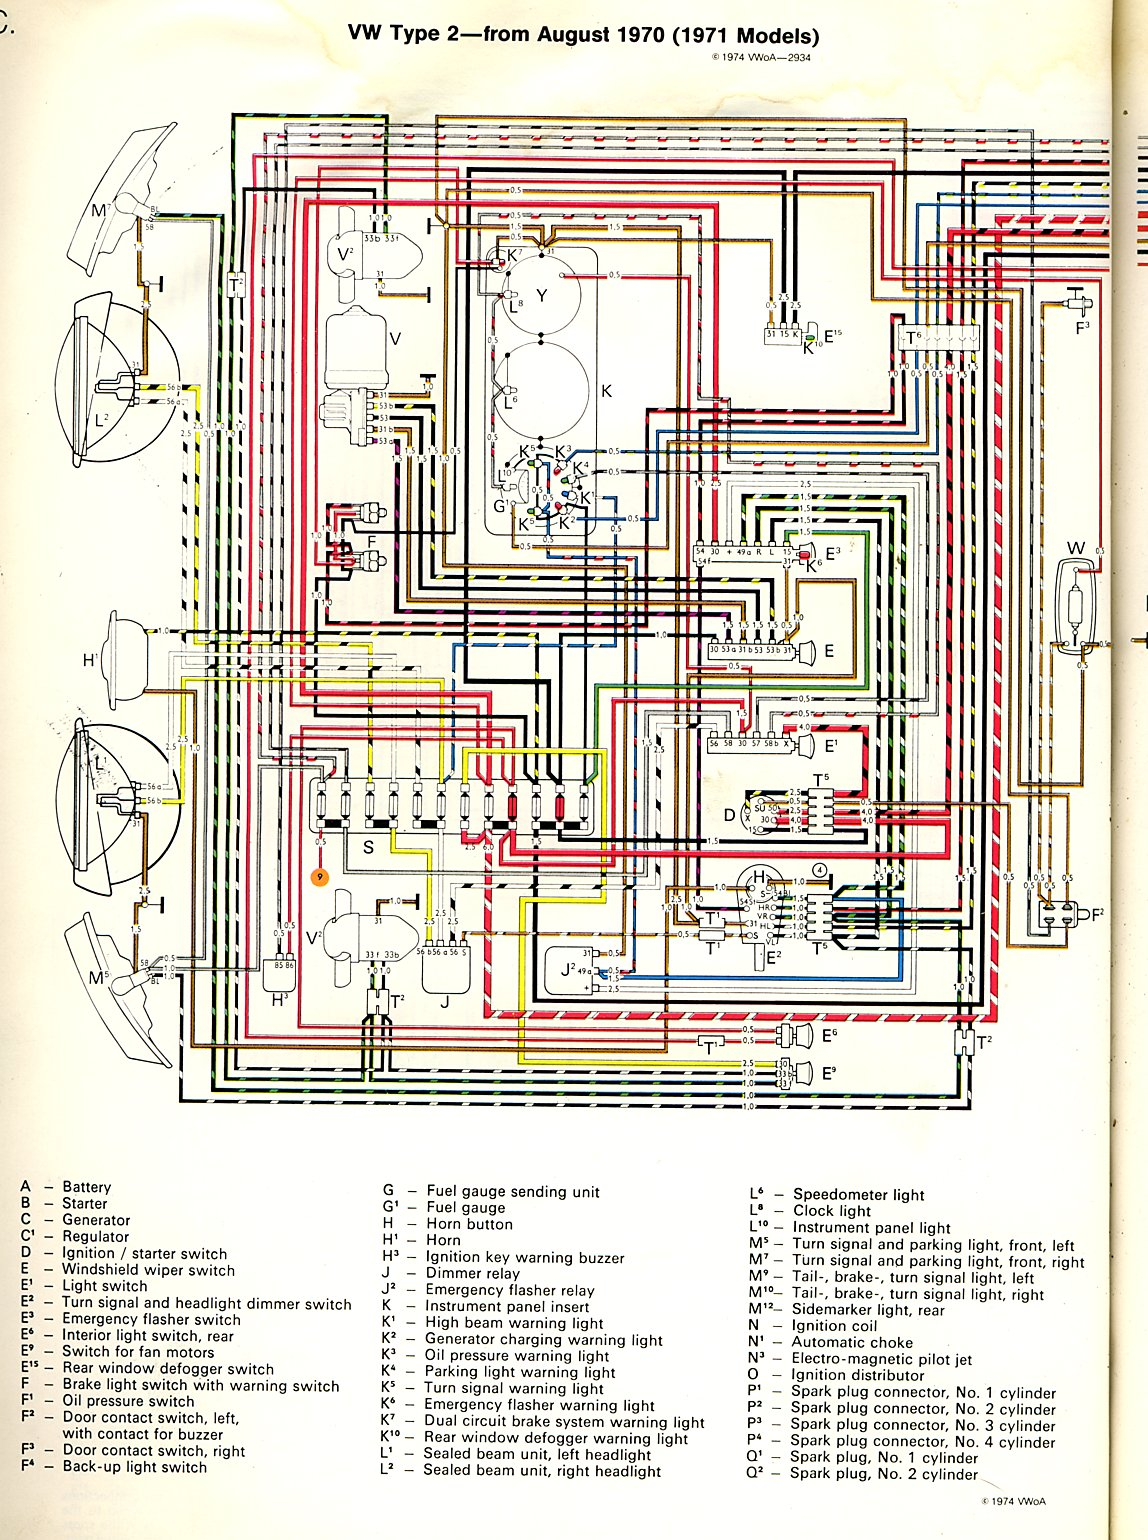 1971 Bus Fuse Box - Wiring Diagram Dash  Vw Bus Wiring Harness on vw wire harness, vw wiring harness diagram, volkswagen beetle wiring harness, off road wiring harness, vw wiring harness kits, pontiac bonneville wiring harness, motorcycle wiring harness, camper wiring harness, vw engine wiring harness, vw bus alternator wiring, dodge challenger wiring harness, vw bus ignition wiring, vw thing wiring harness, porsche wiring harness, kia sportage wiring harness, volkswagen type 3 wiring harness, vw trike wiring harness, vintage vw wiring harness, trailer wiring harness, honda accord wiring harness,